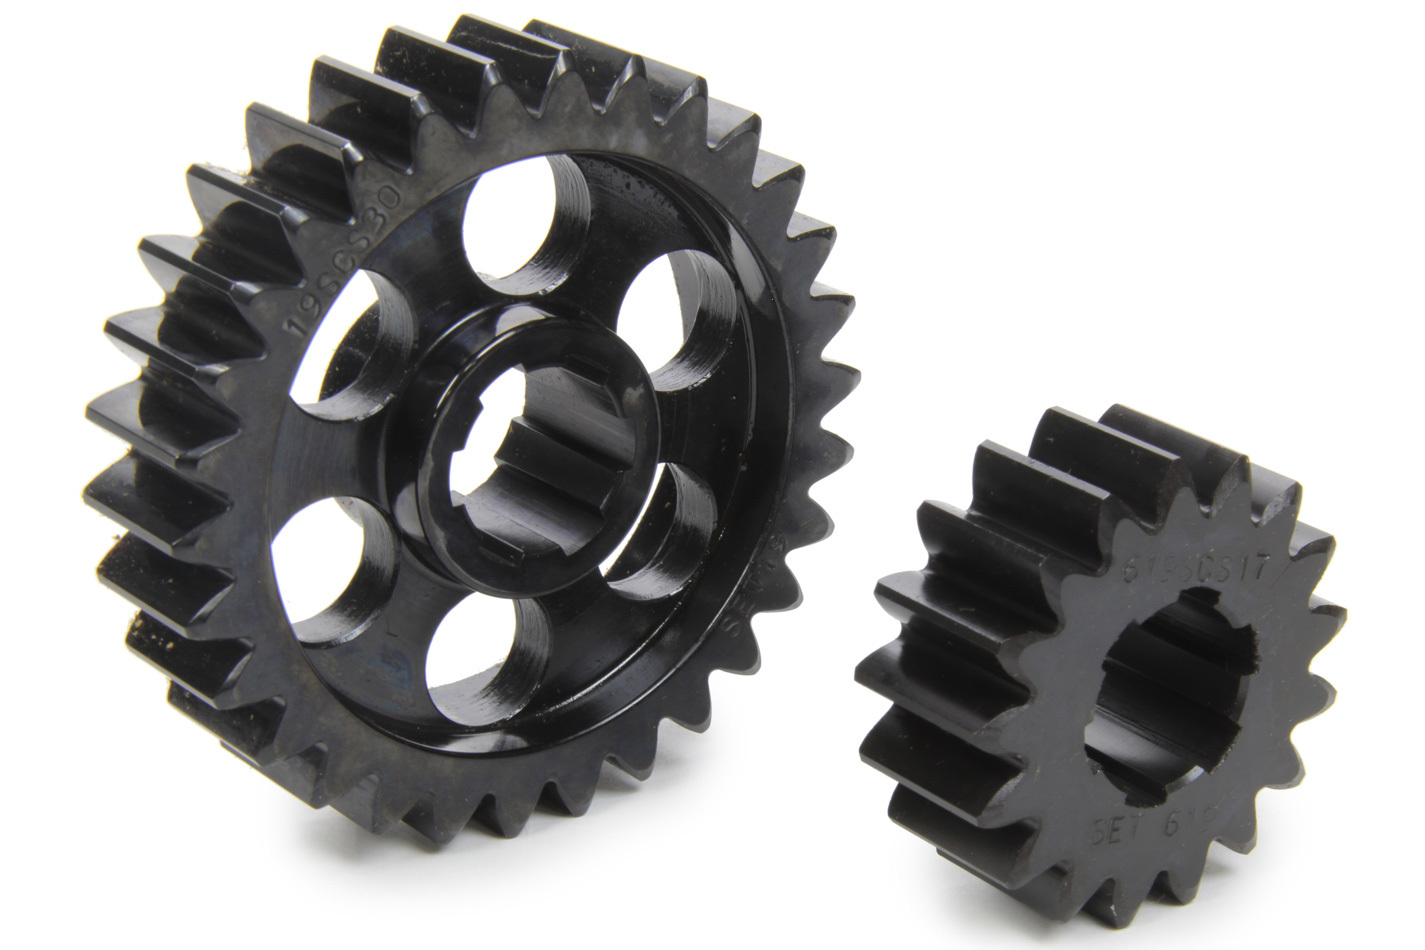 SCS Gears 619 Quick Change Gear Set, Professional, Set 619, 6 Spline, 4.11 Ratio 2.33 / 7.25, 4.33 Ratio 2.45 / 7.64, Steel, Each